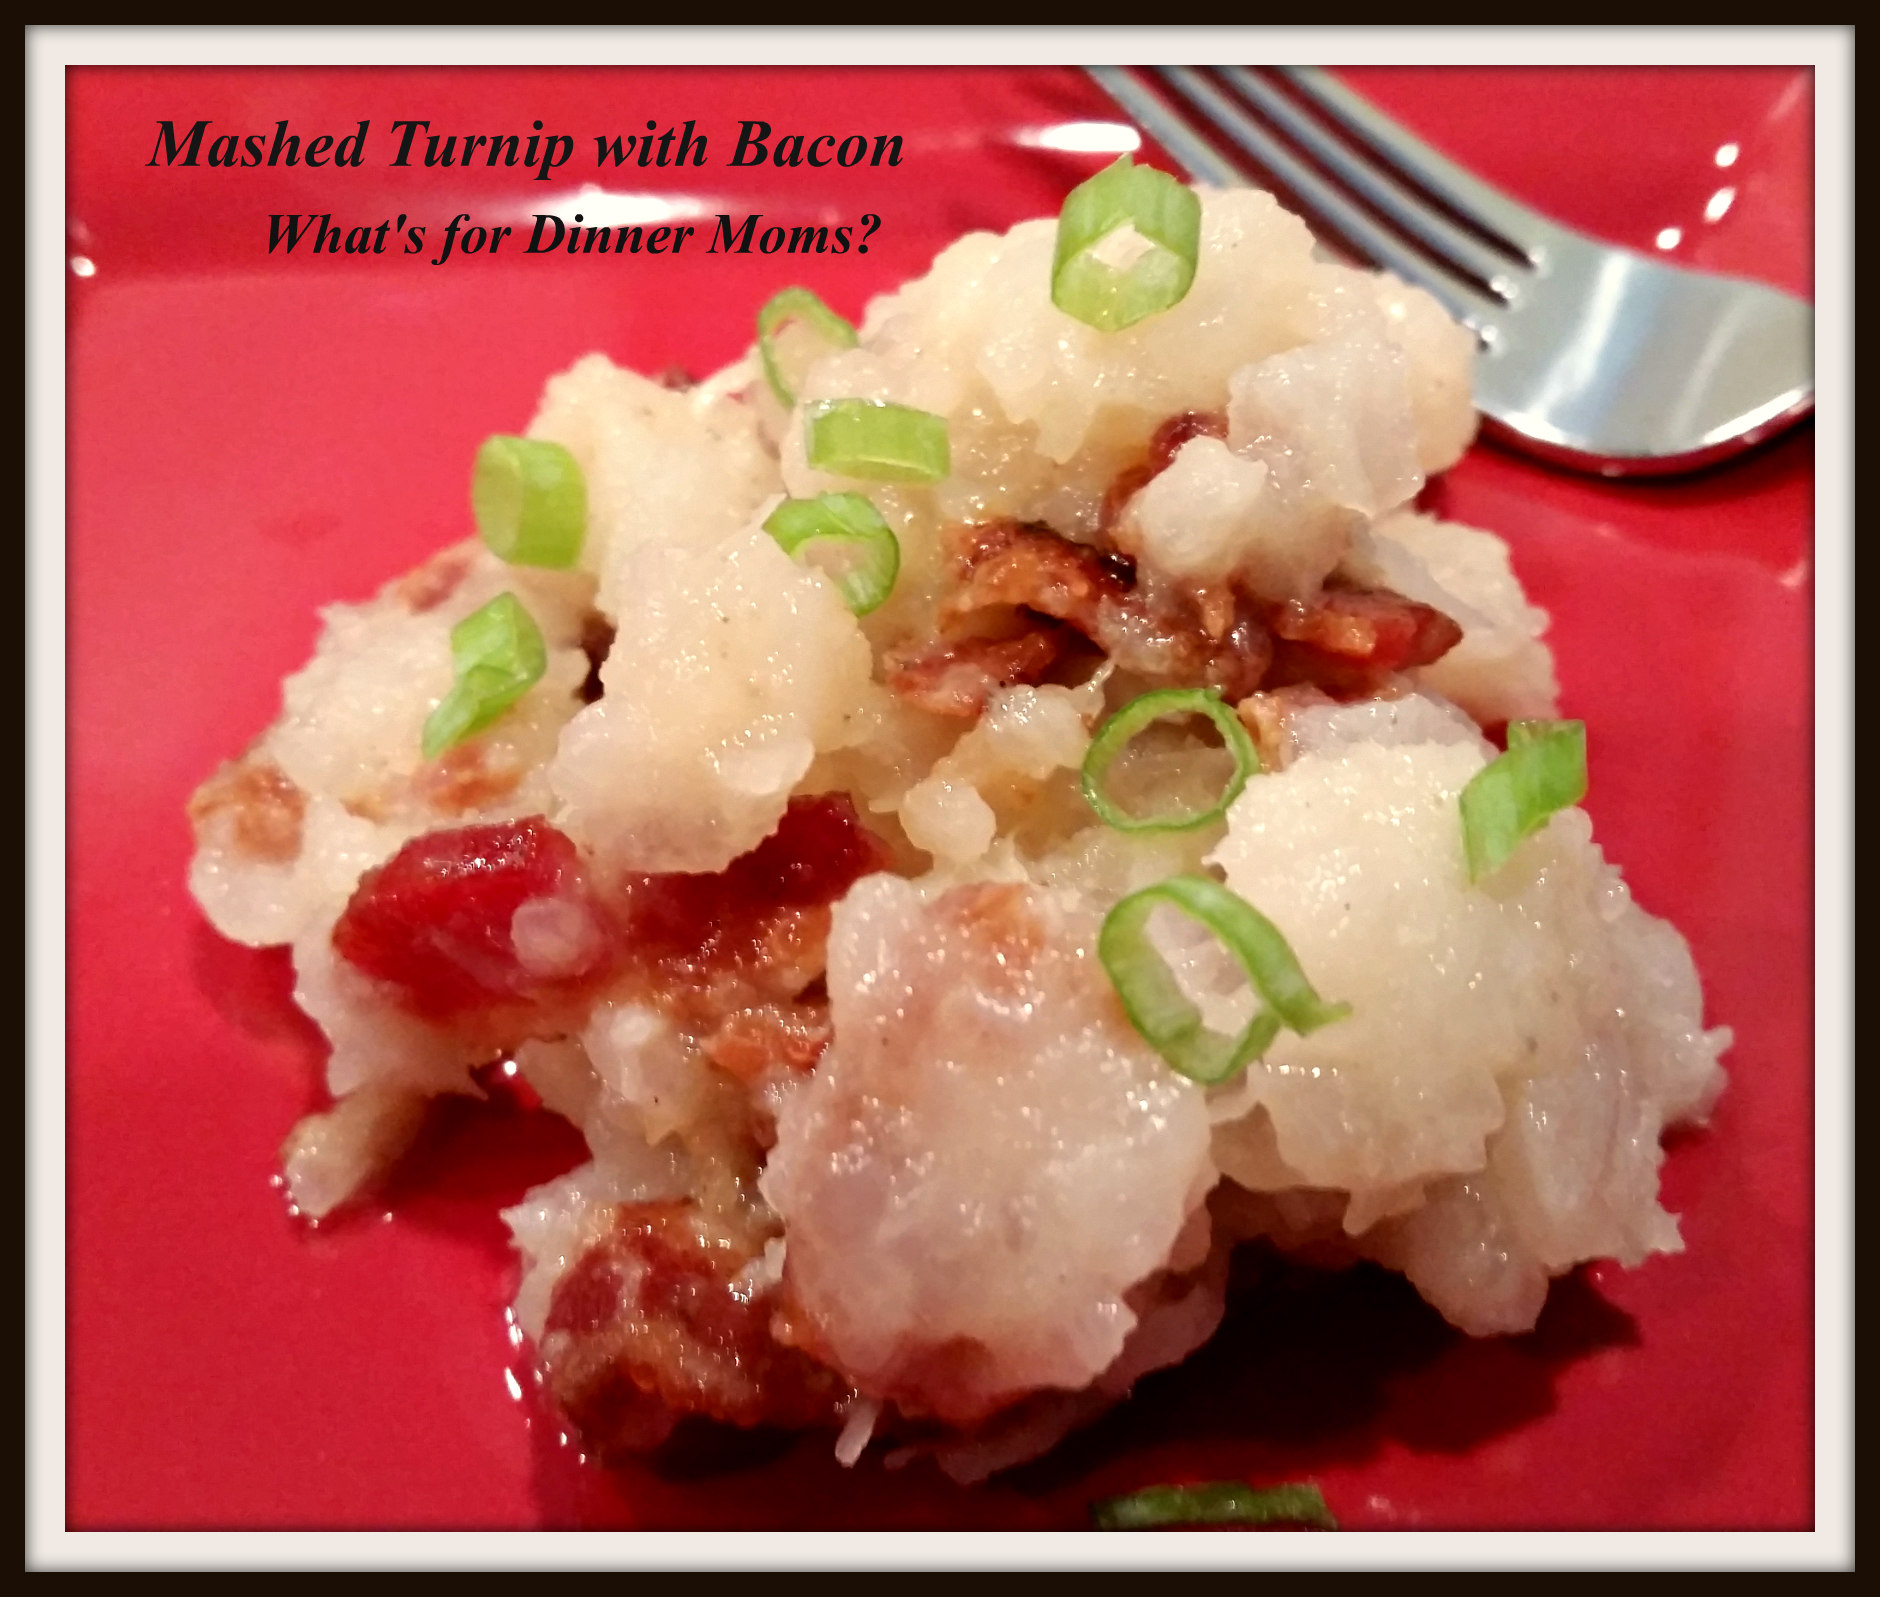 Mashed Turnips with Bacon – What's for Dinner Moms?